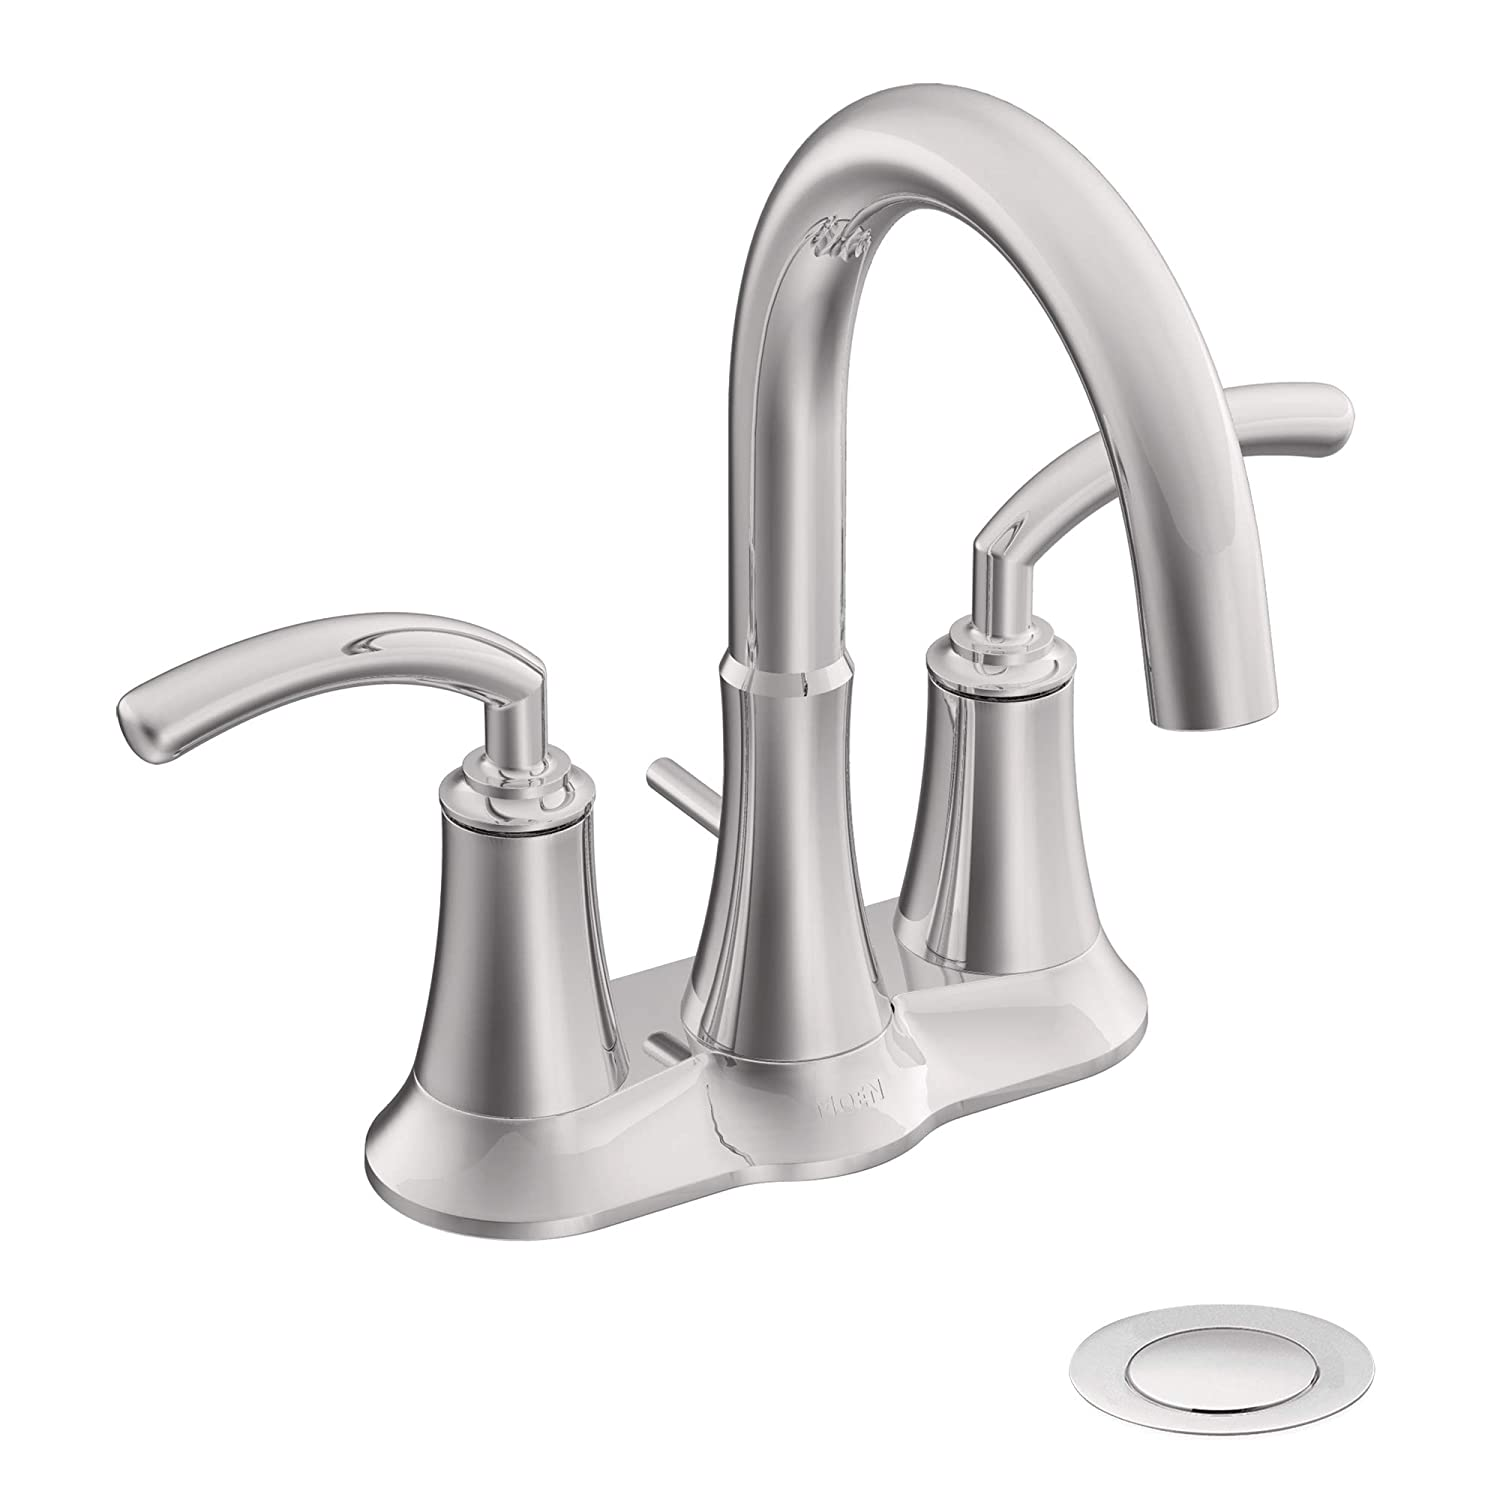 Moen S6510 Icon Two-Handle Lavatory Faucet with Drain Assembly, Chrome